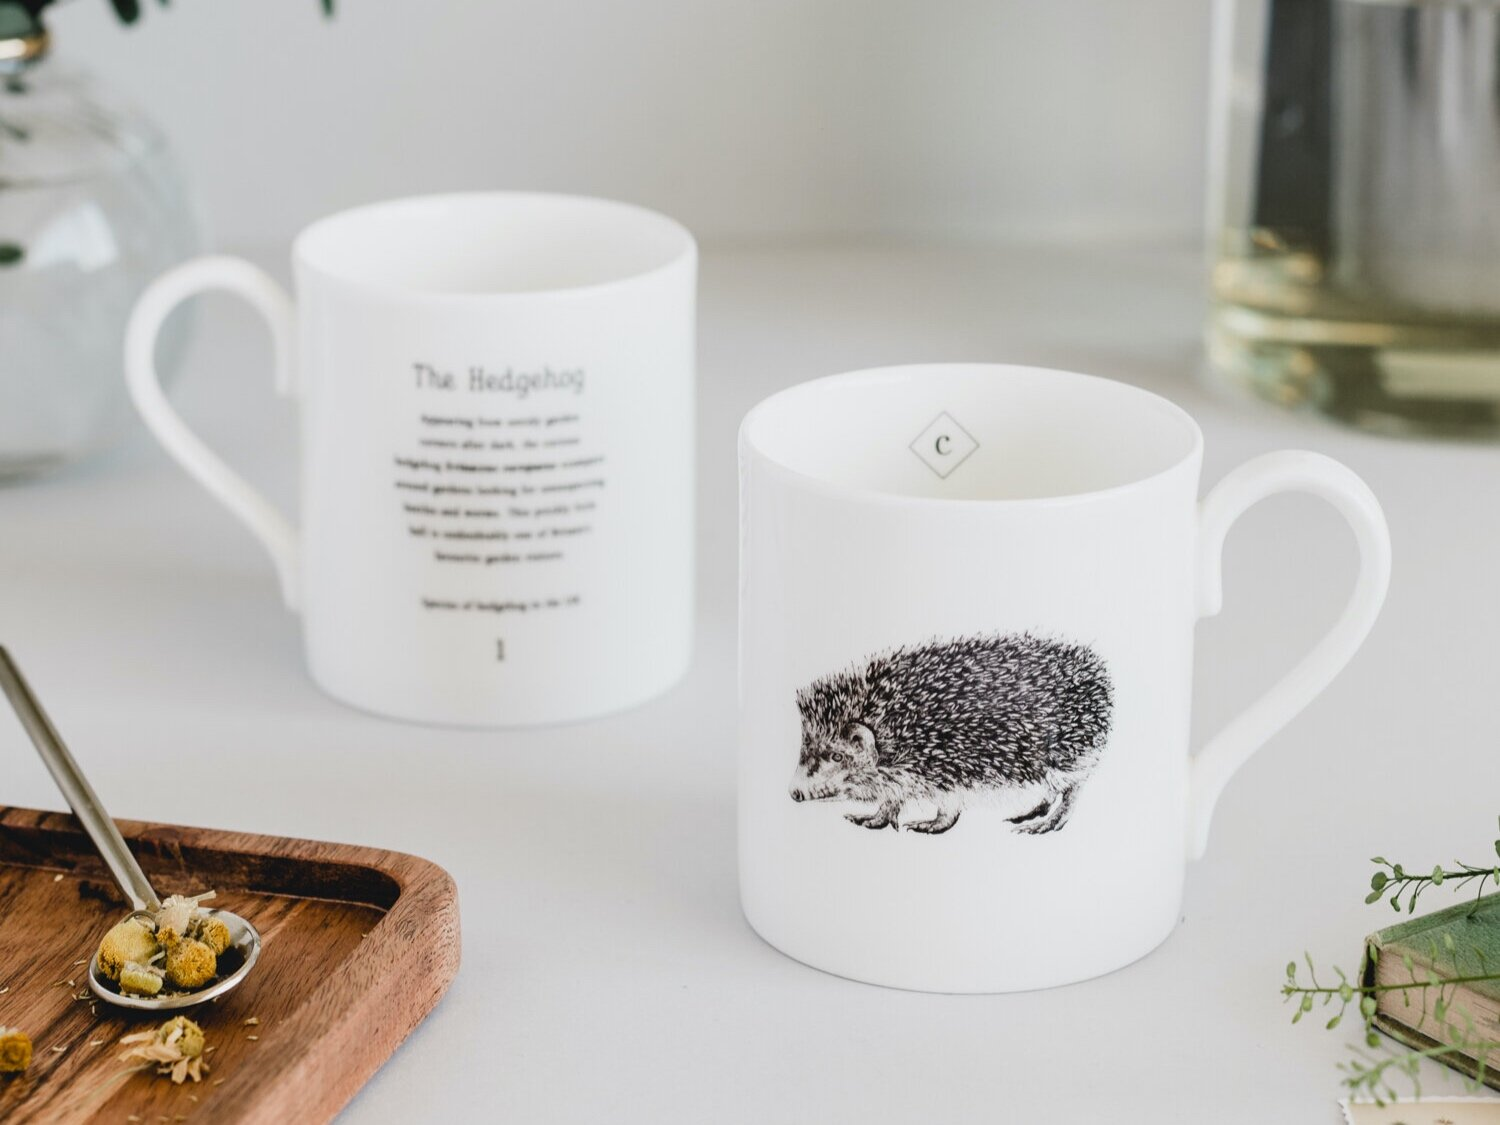 Creature Candy Hedgehog Mug